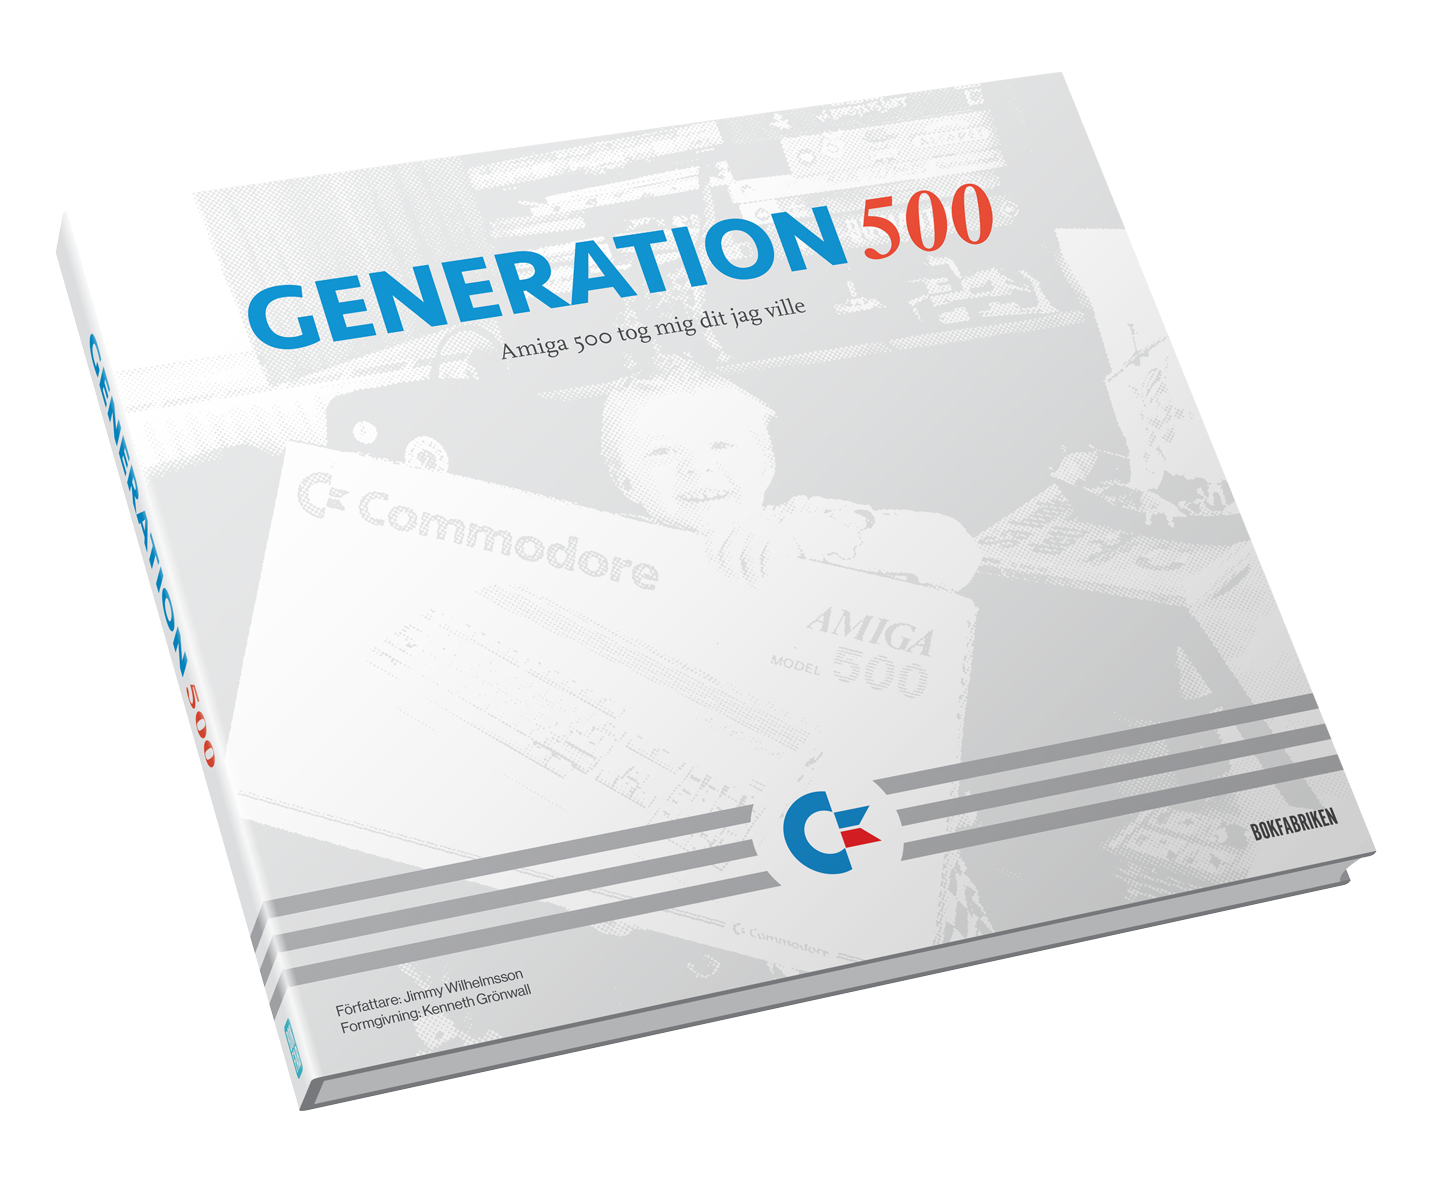 Generation 500, the book